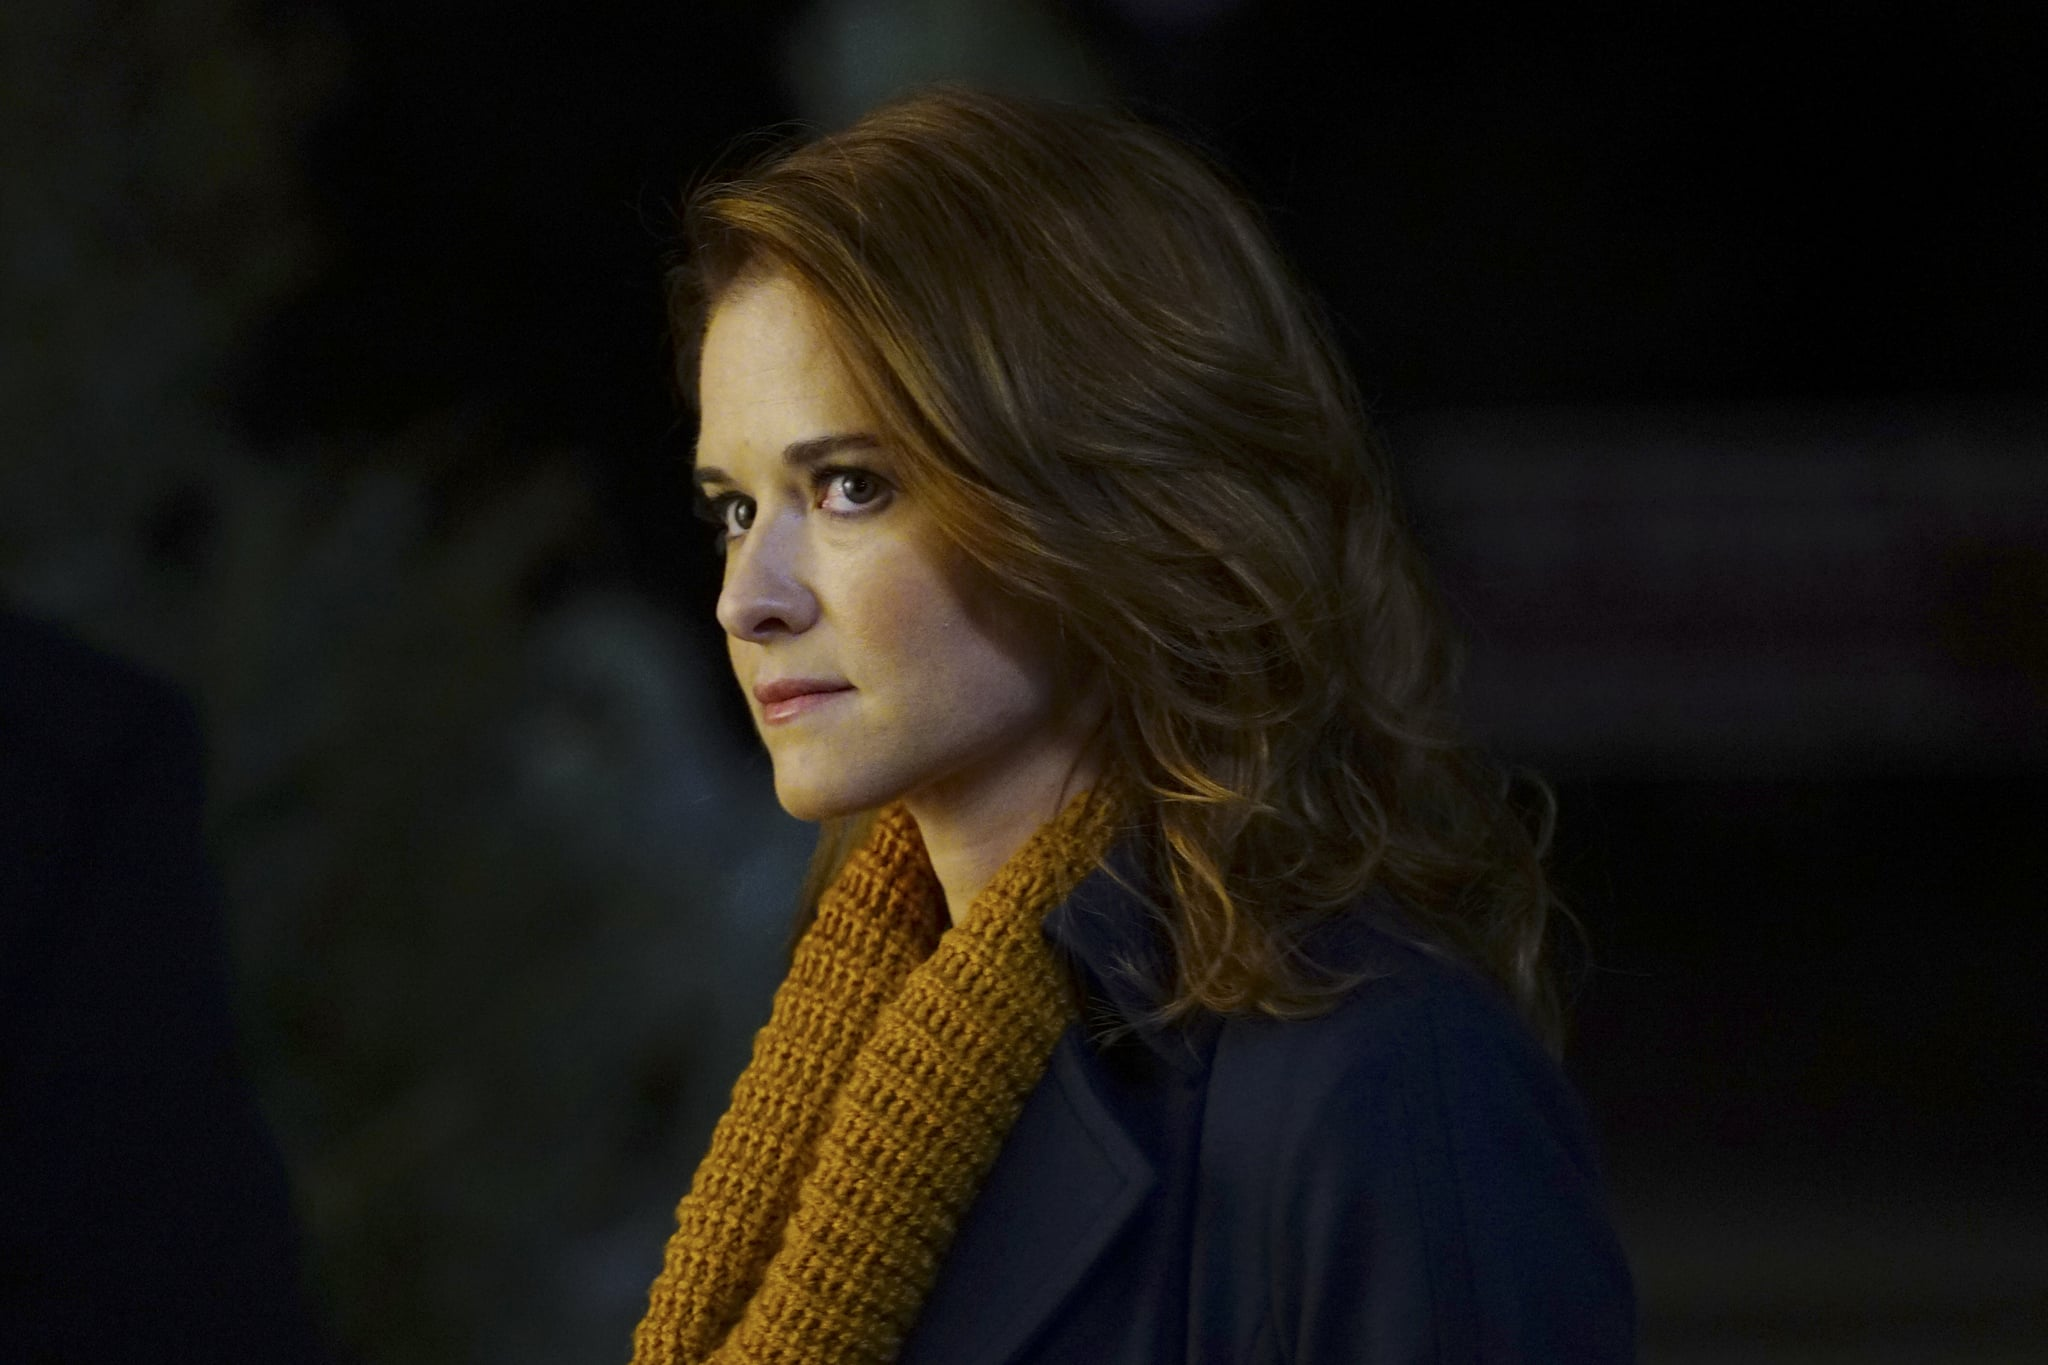 Sarah Drew as April Kepner